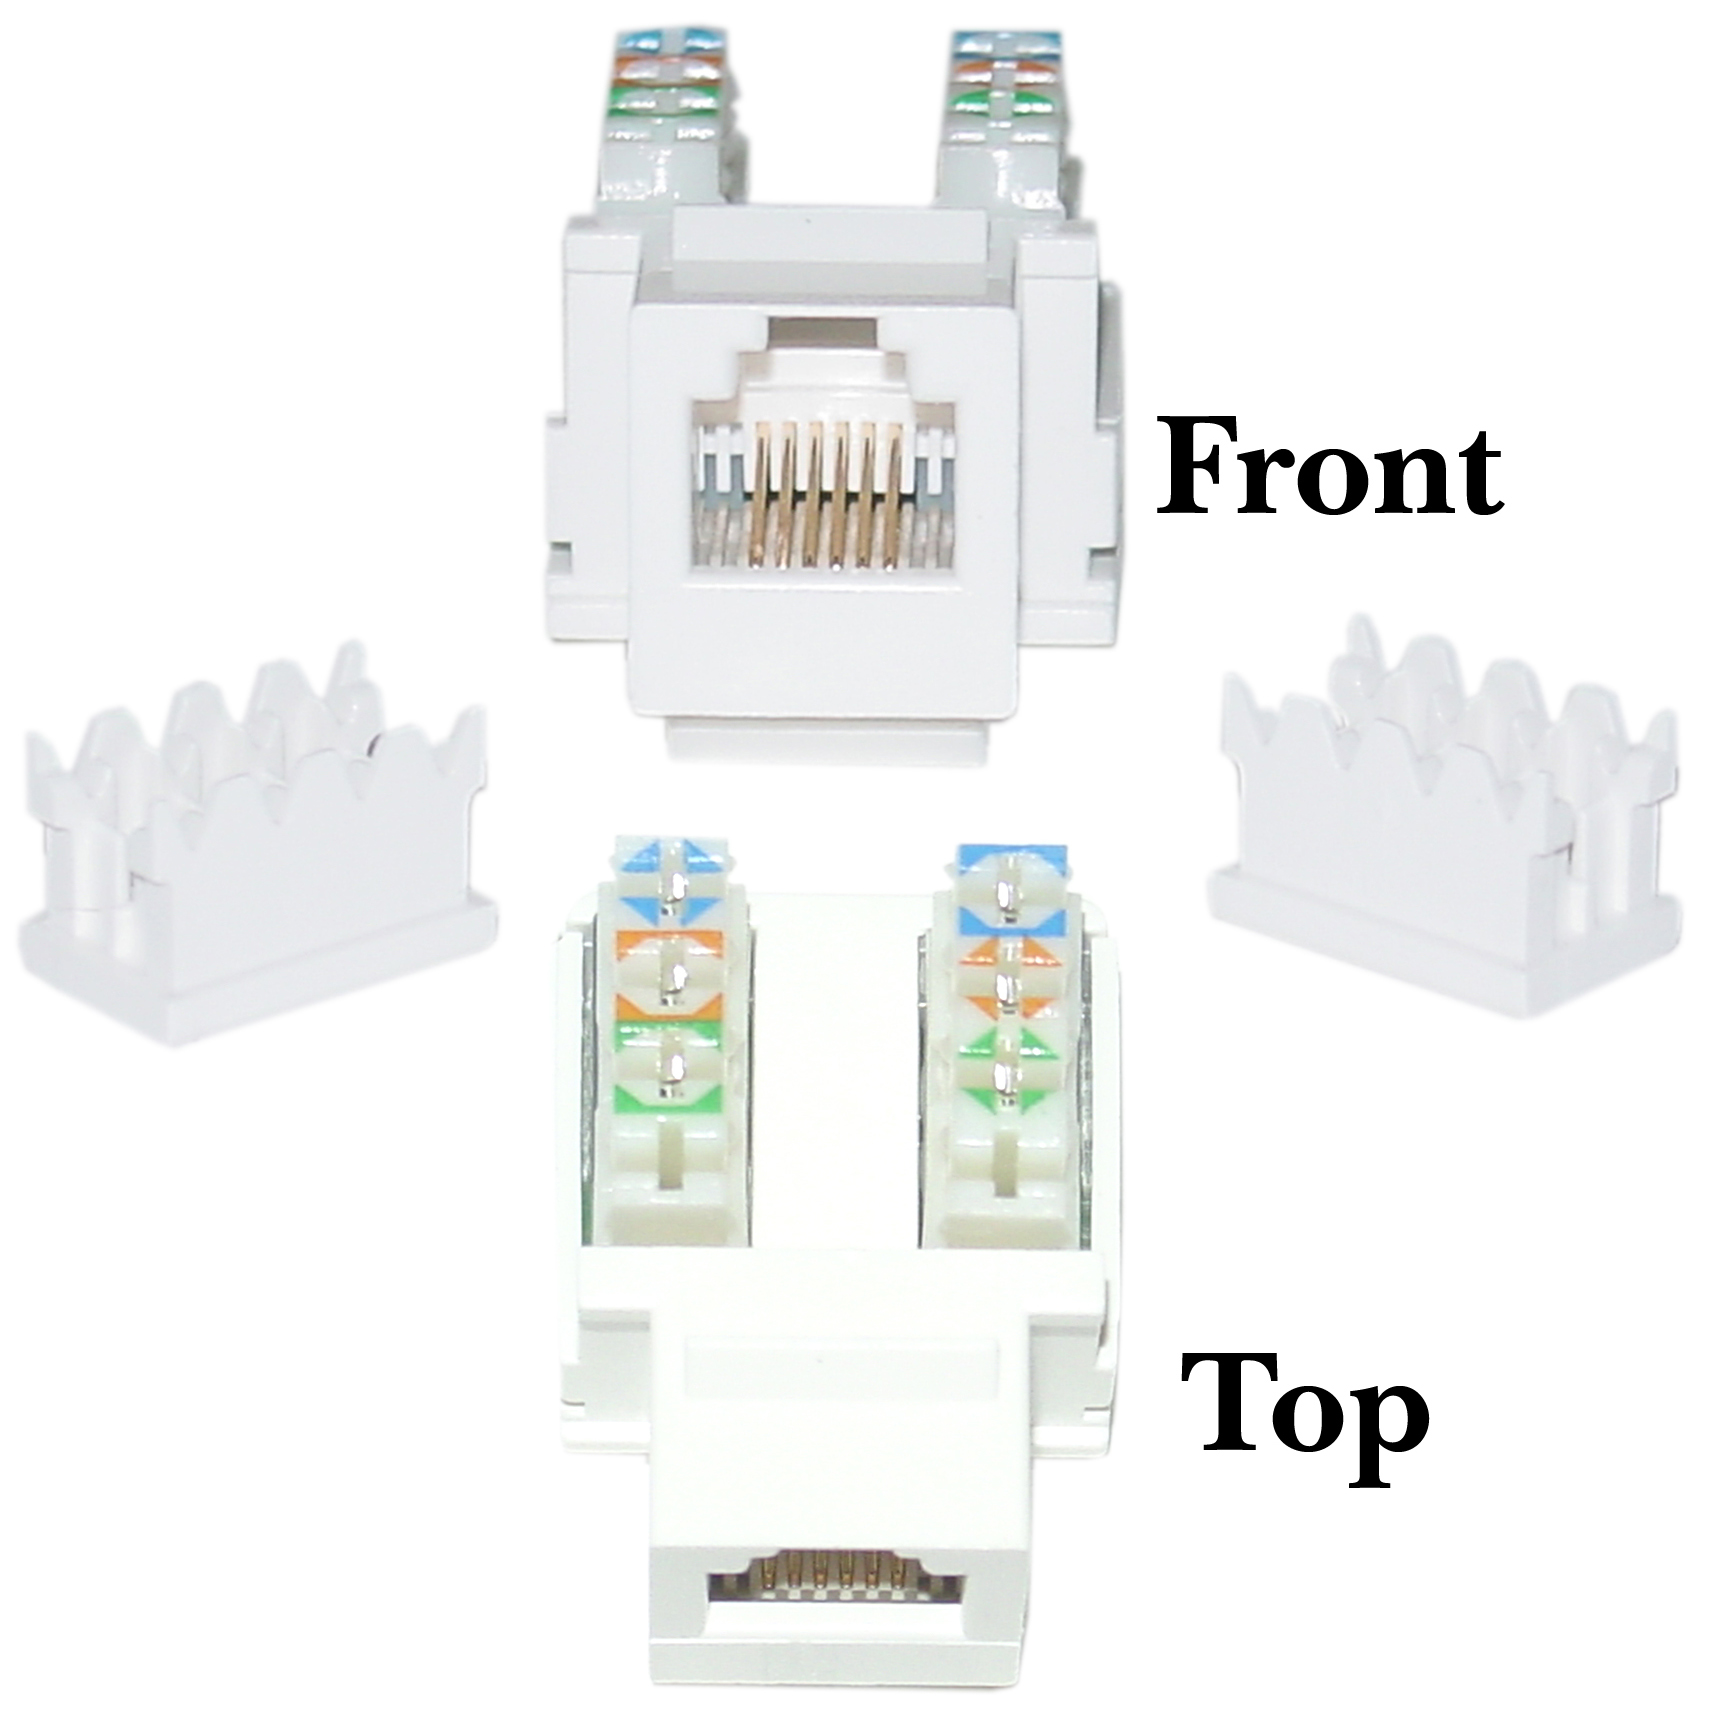 hight resolution of rj11 punch down diagram wiring diagram writephone data jack keystone rj11 rj12 female to 110 rj11